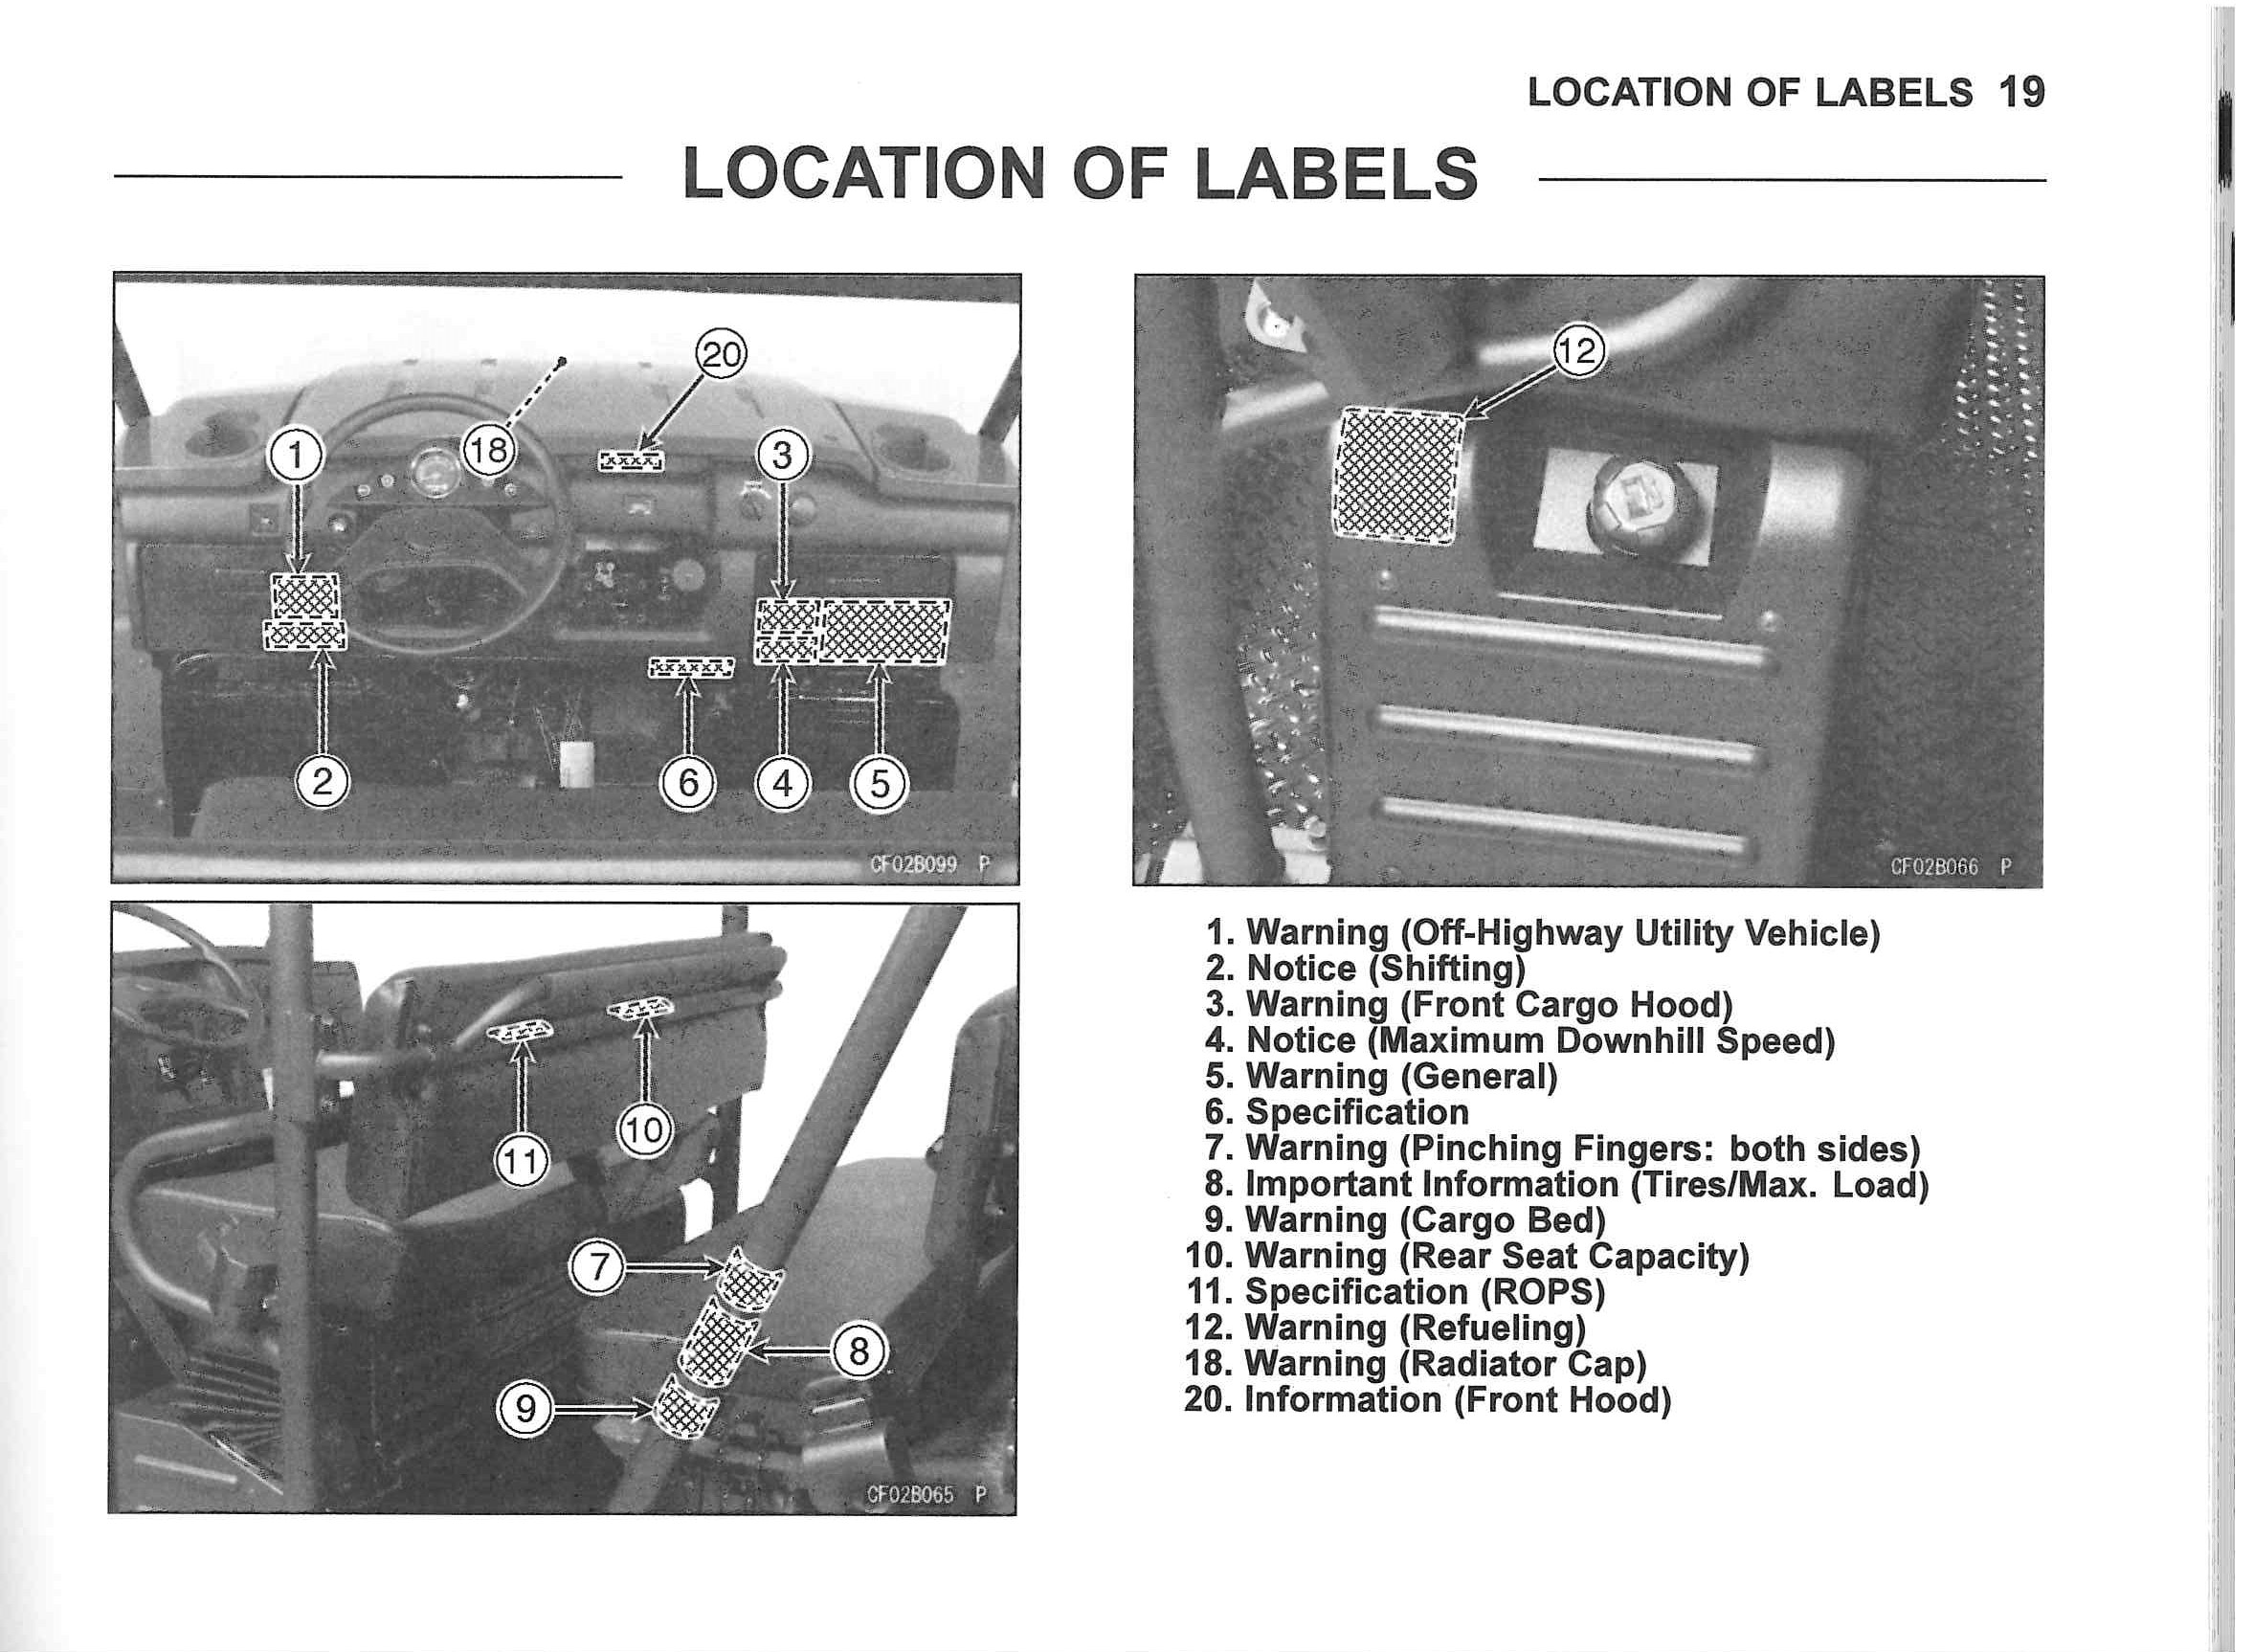 wiring diagram for kawasaki mule 4010 the wiring diagram 3010 kawasaki mule wiring diagram nilza wiring diagram